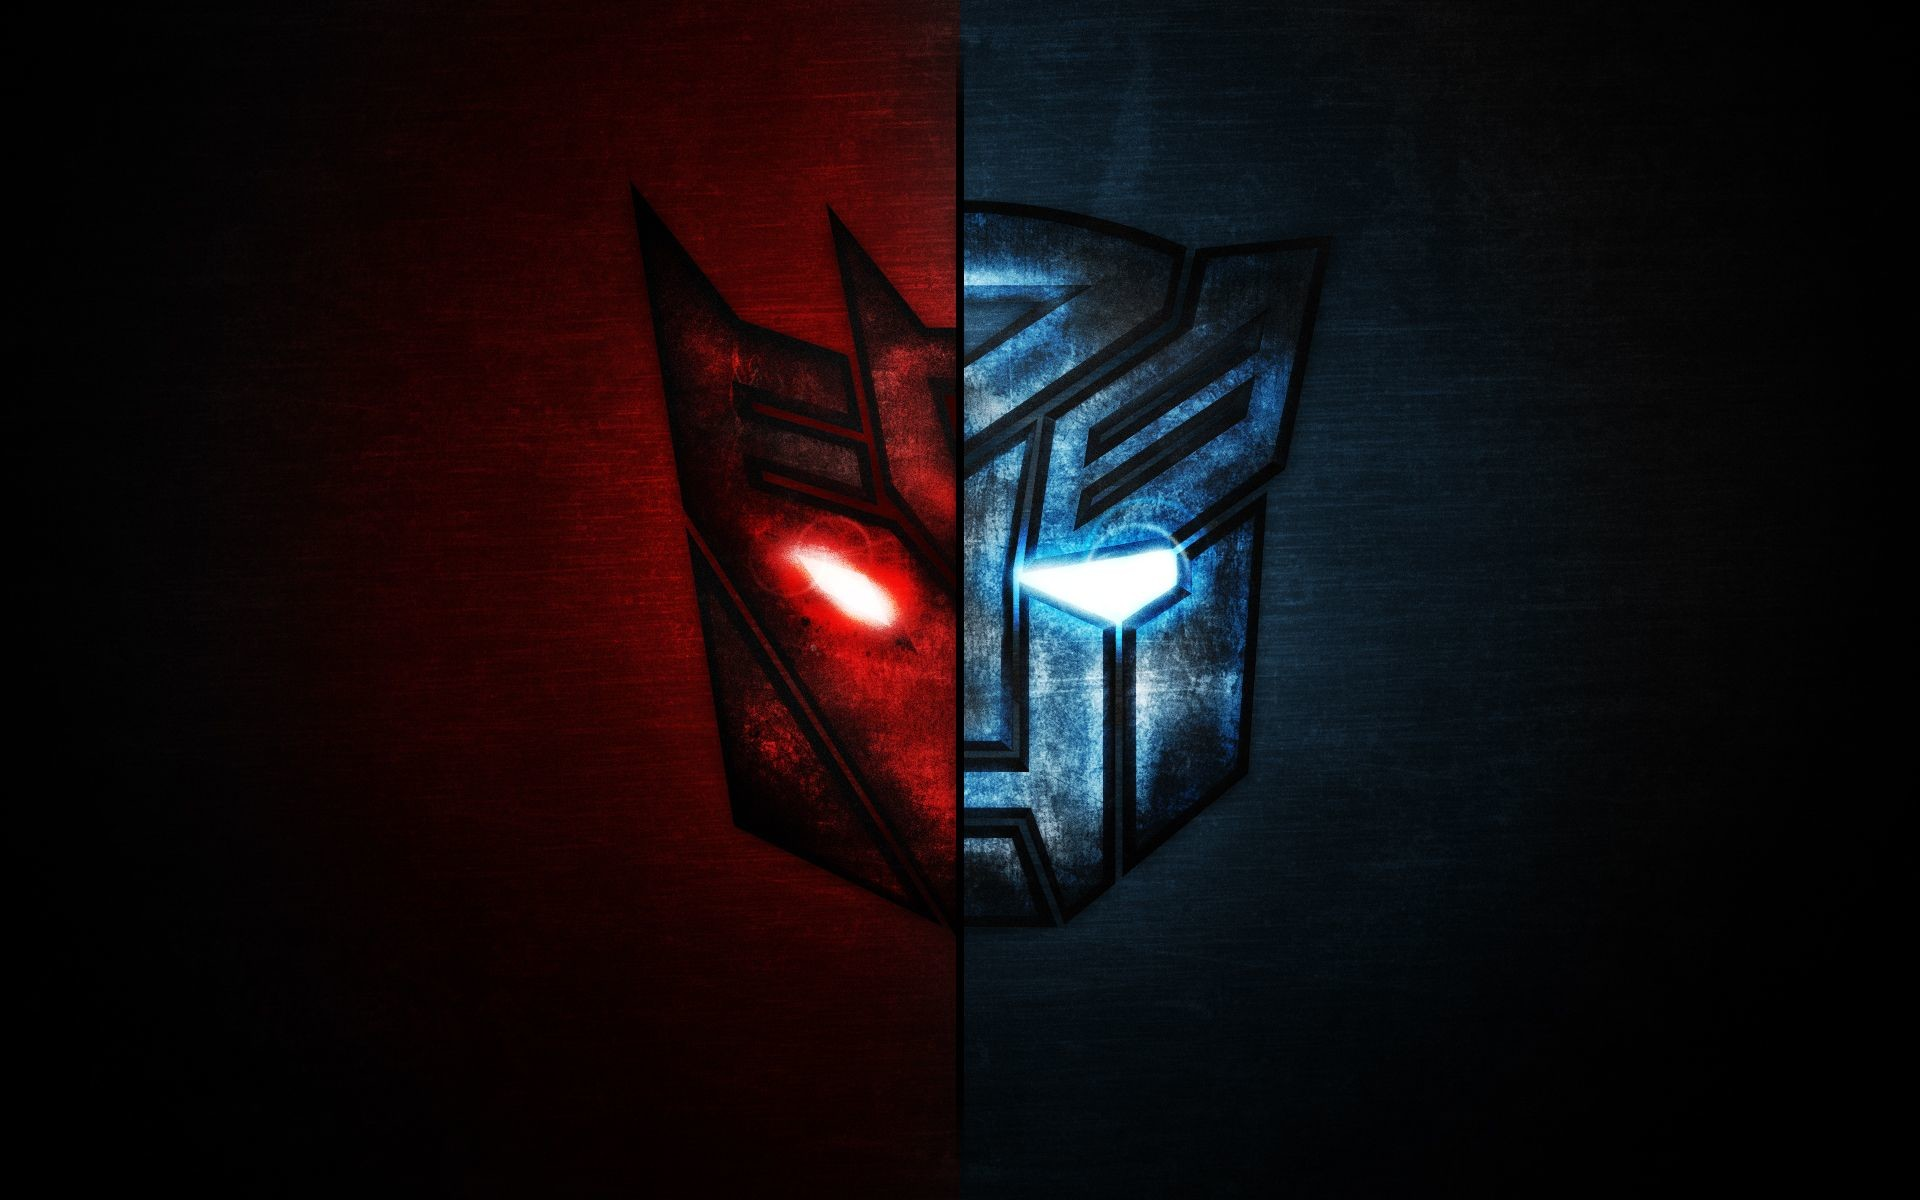 Res: 1920x1200, Transformers - Split Decepticons + Autobots logo in high contrast